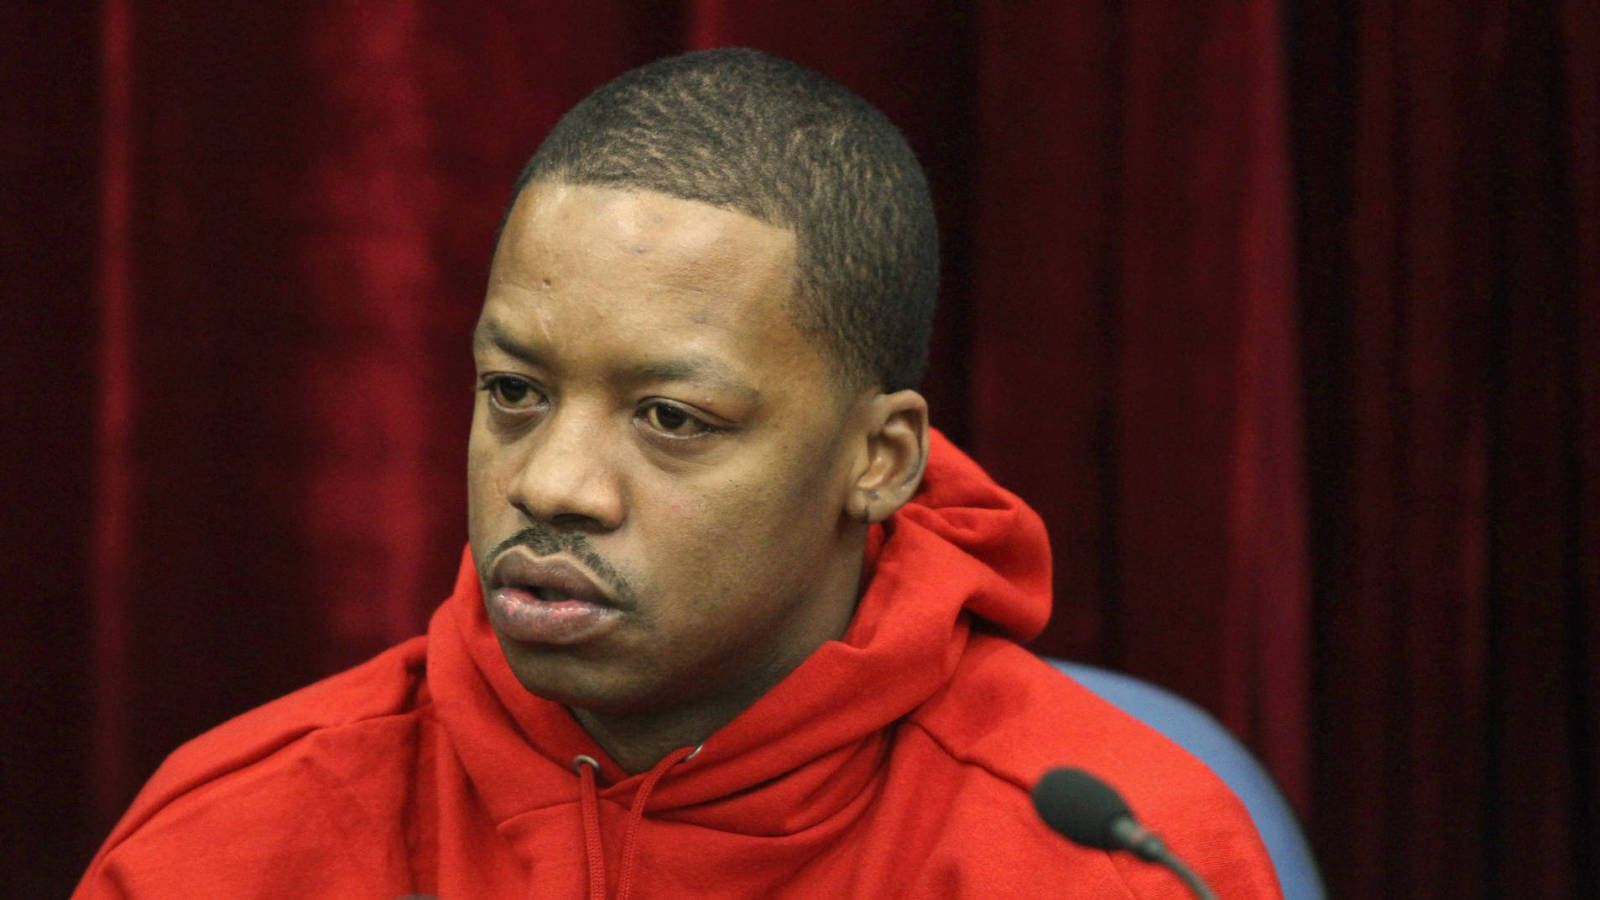 Steve Francis arrested for DWI pot possession threatening cops